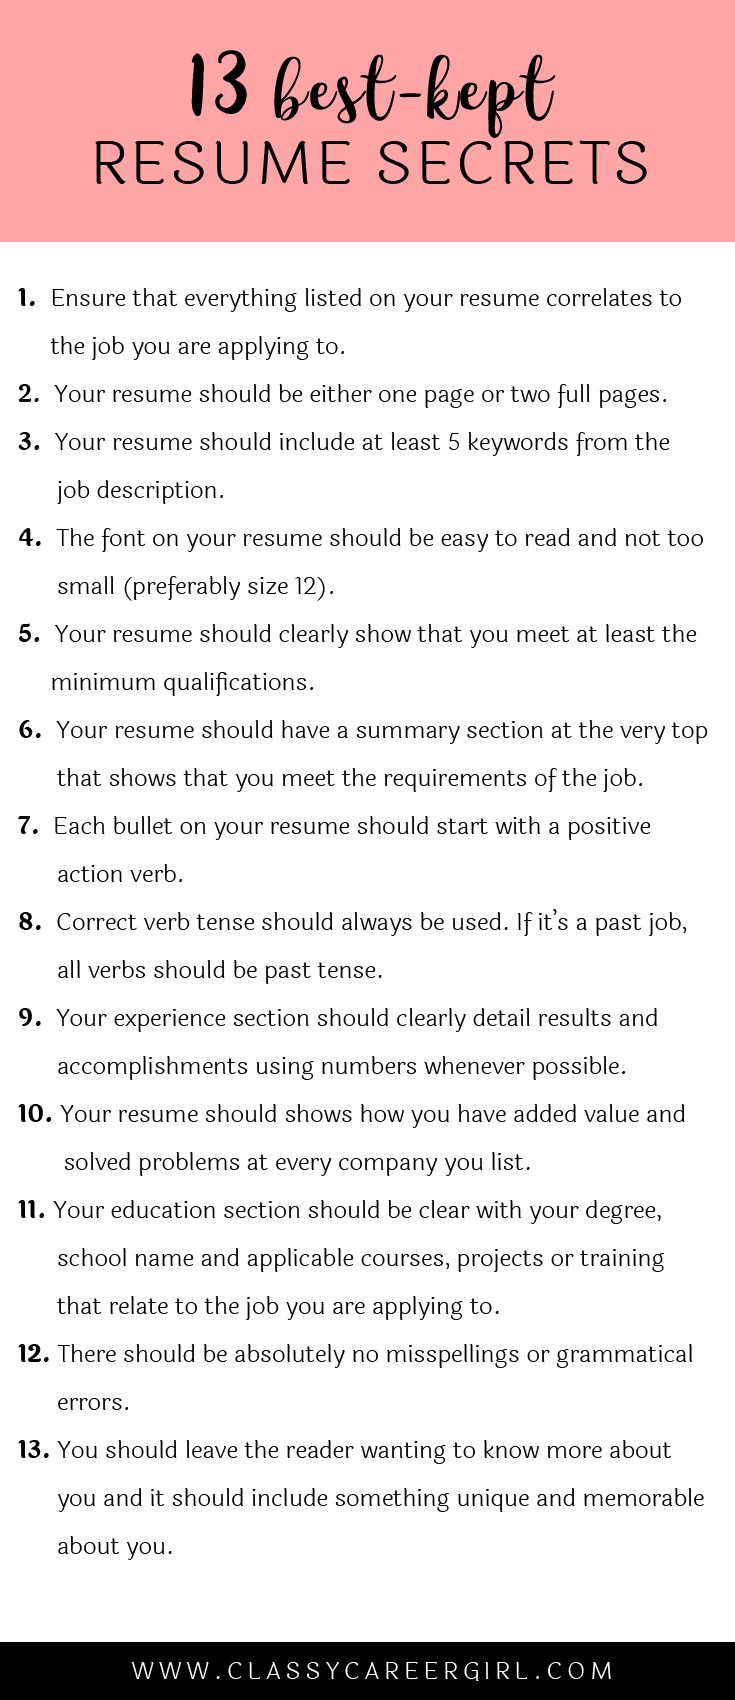 Opposenewapstandardsus  Remarkable  Ideas About Resume On Pinterest  Cv Format Resume Cv And  With Inspiring Some Hiring Managers Will Toss Your Resume Out If You Dont Know These  With Beauteous Resume For Business Analyst Also Recruiting Coordinator Resume In Addition Resume Preparation Service And Creating A Resume For Free As Well As Administrative Assistant Resume Template Additionally Resume For Mba Application From Pinterestcom With Opposenewapstandardsus  Inspiring  Ideas About Resume On Pinterest  Cv Format Resume Cv And  With Beauteous Some Hiring Managers Will Toss Your Resume Out If You Dont Know These  And Remarkable Resume For Business Analyst Also Recruiting Coordinator Resume In Addition Resume Preparation Service From Pinterestcom